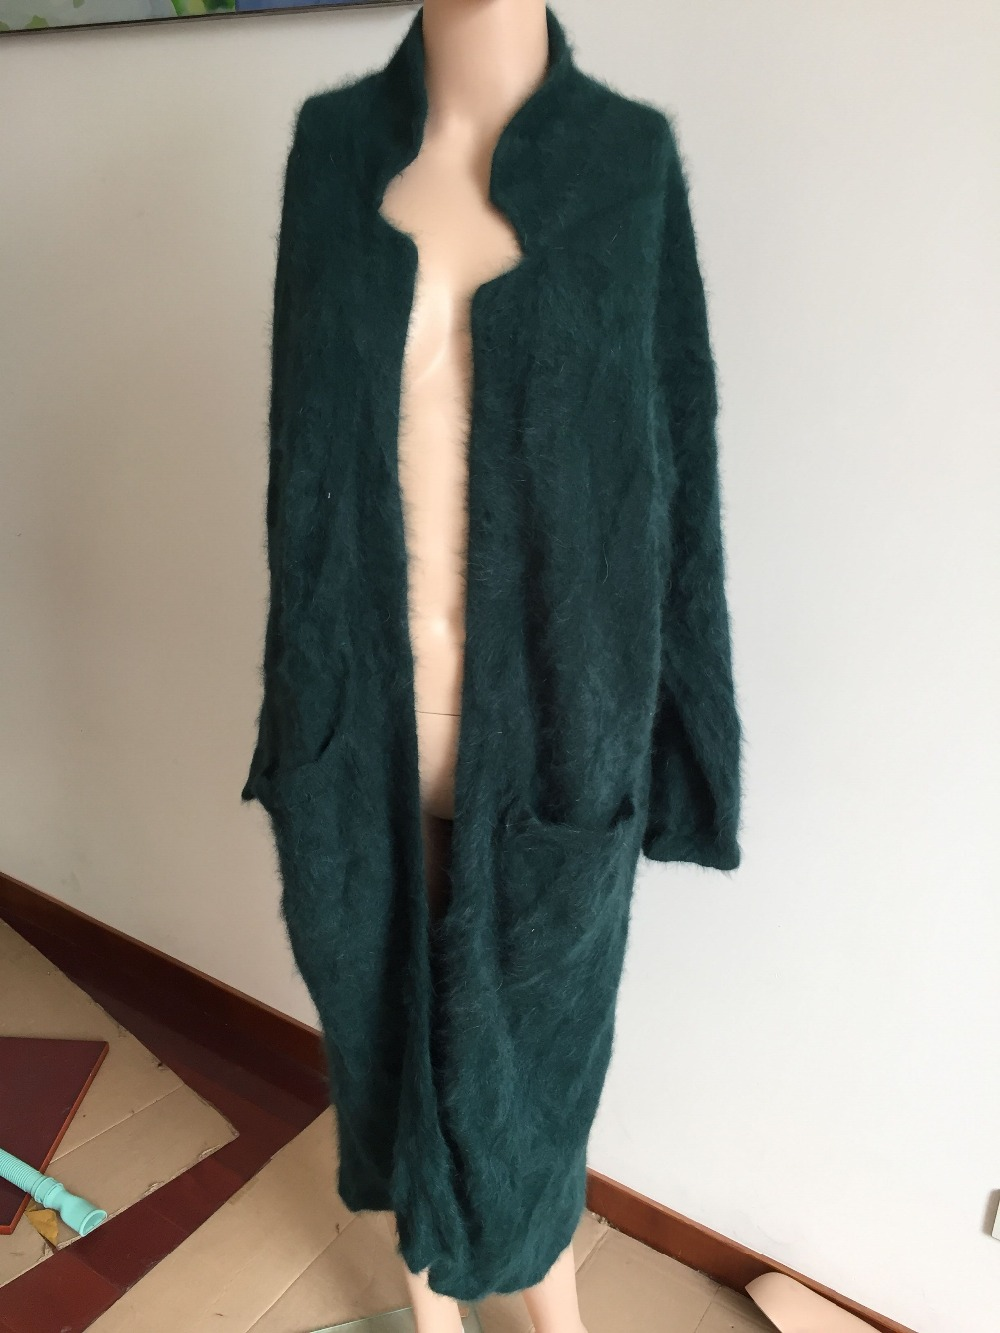 4a56ca3cee Very Very Low Price- Inventory clearance sale - 100% Mink Cashmere Women  Sweaters Cardigans free shipping